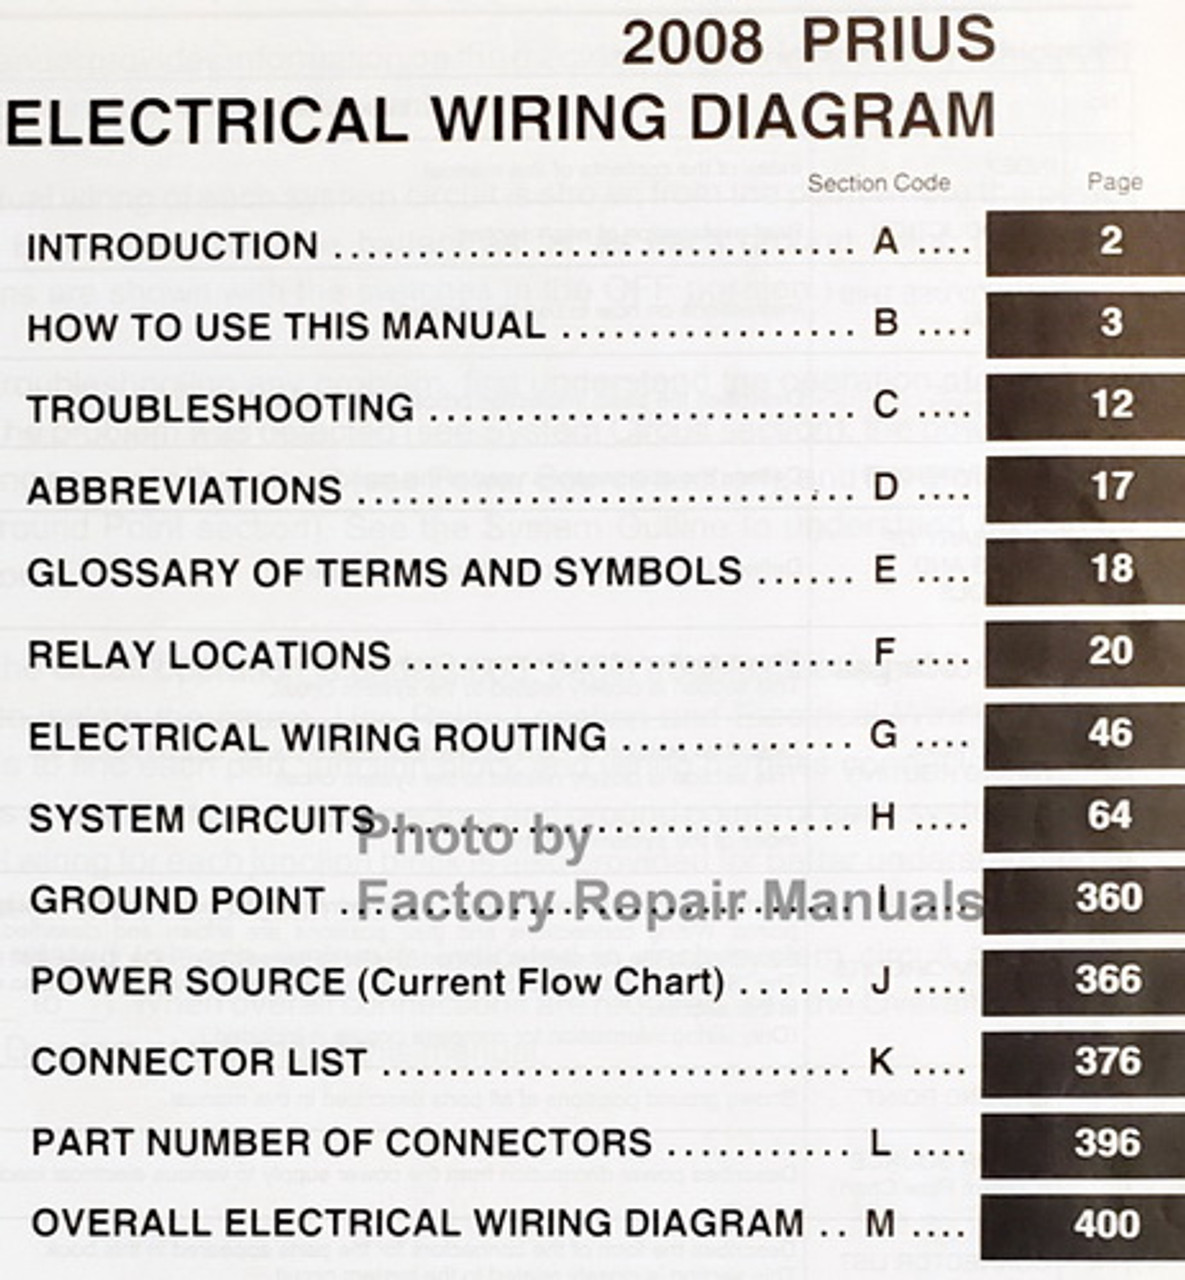 Toyota Prius Wire Diagram Electrical Wiring Diagrams 00 Astro Begeboy Wiring Diagram Source